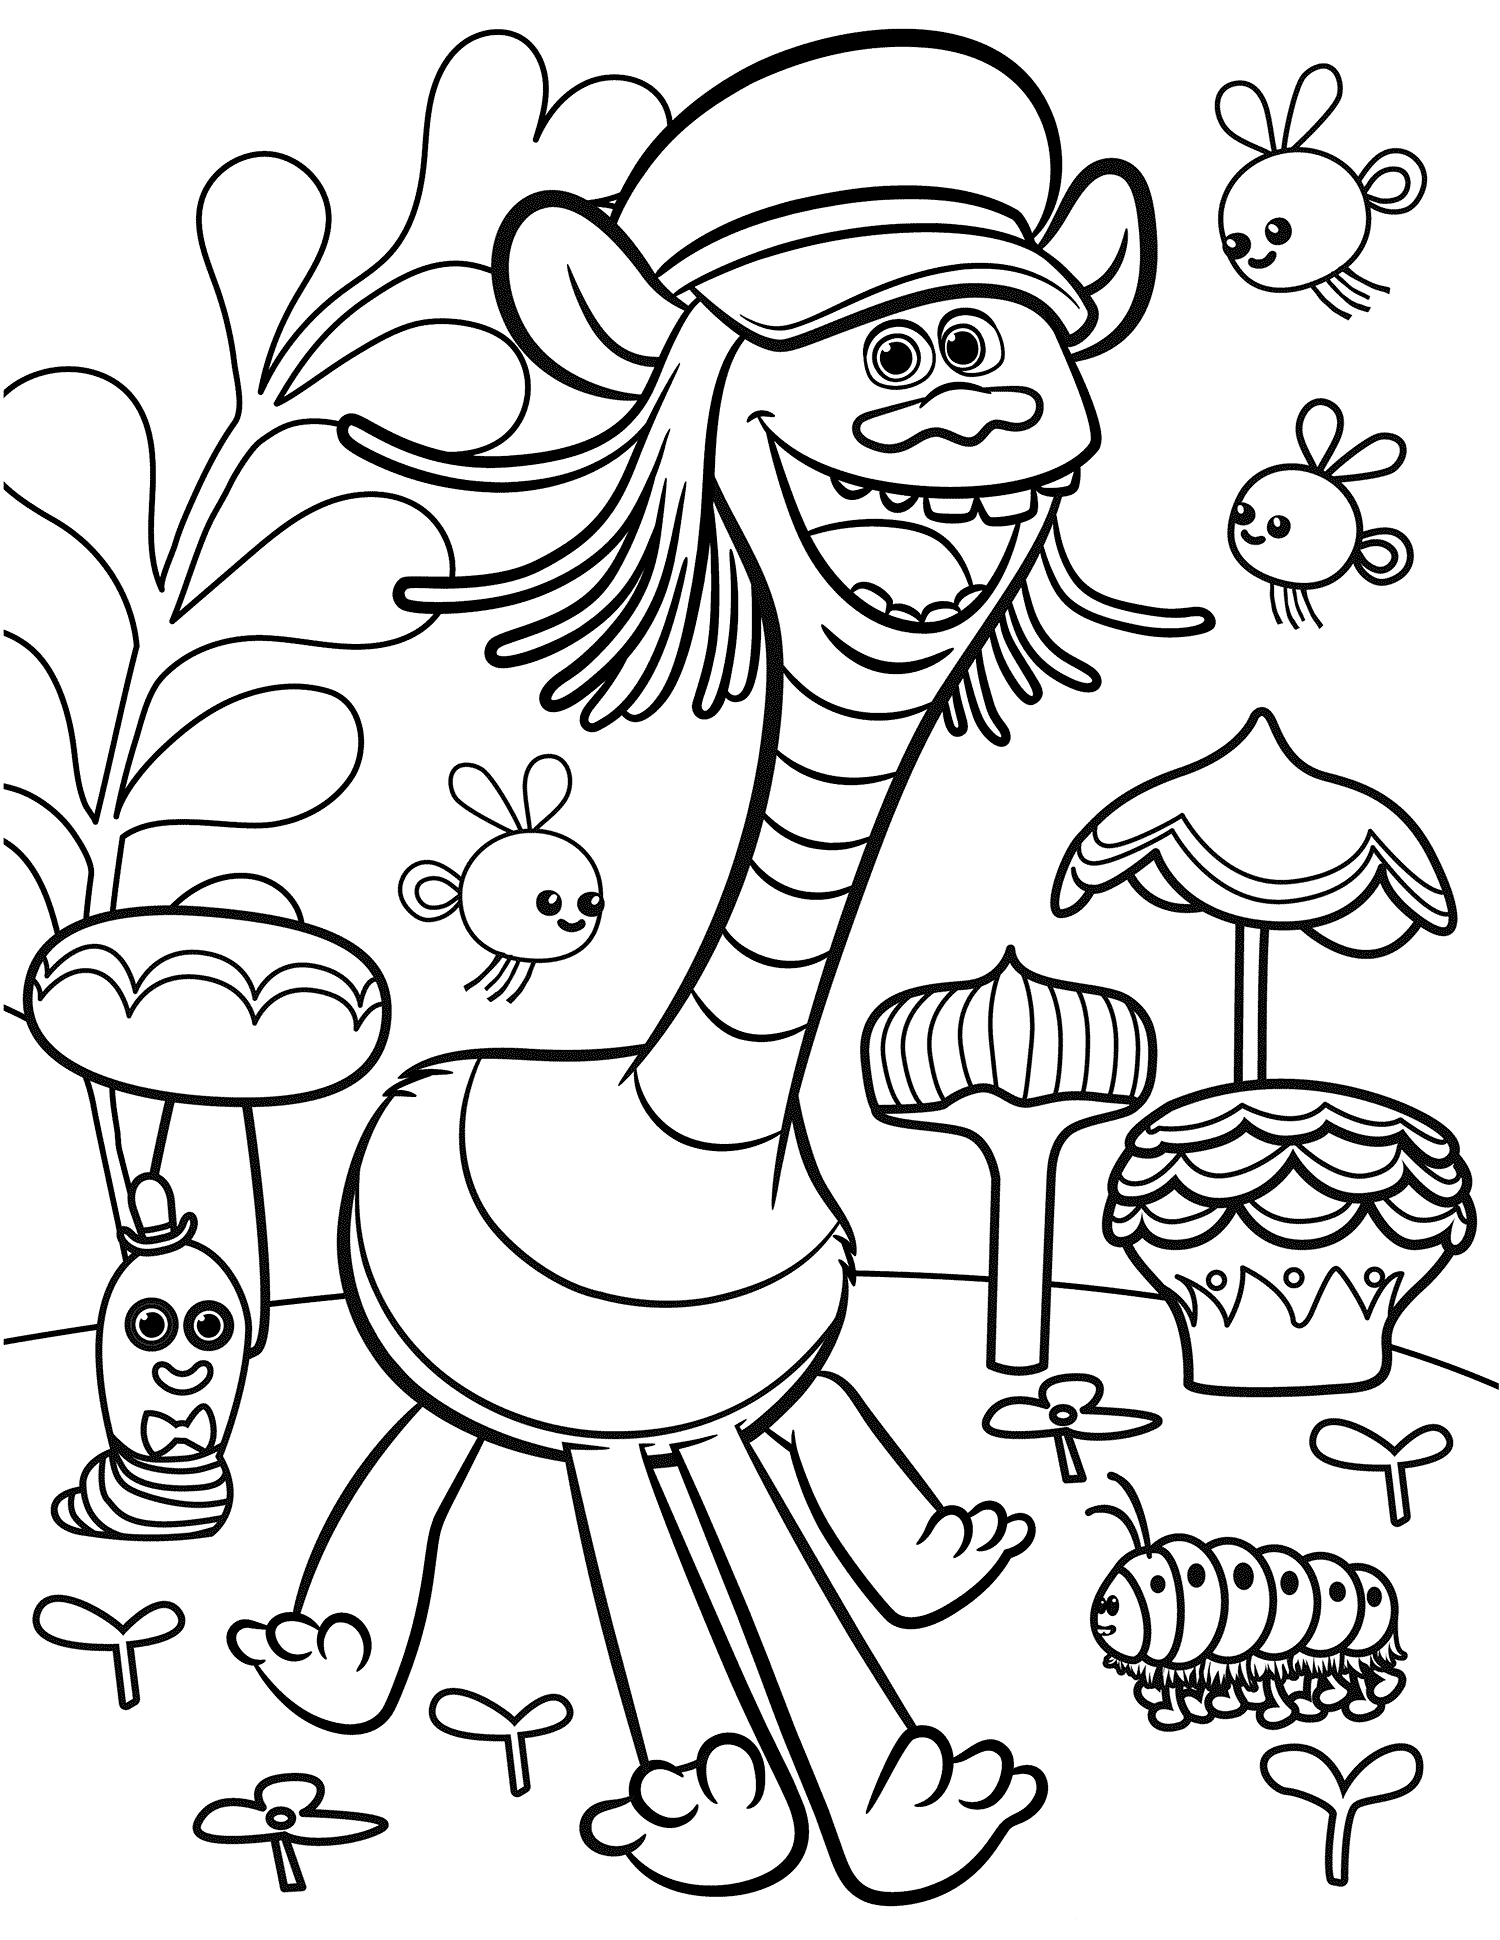 Trolls movie coloring pages best coloring pages for kids for Coloring pages